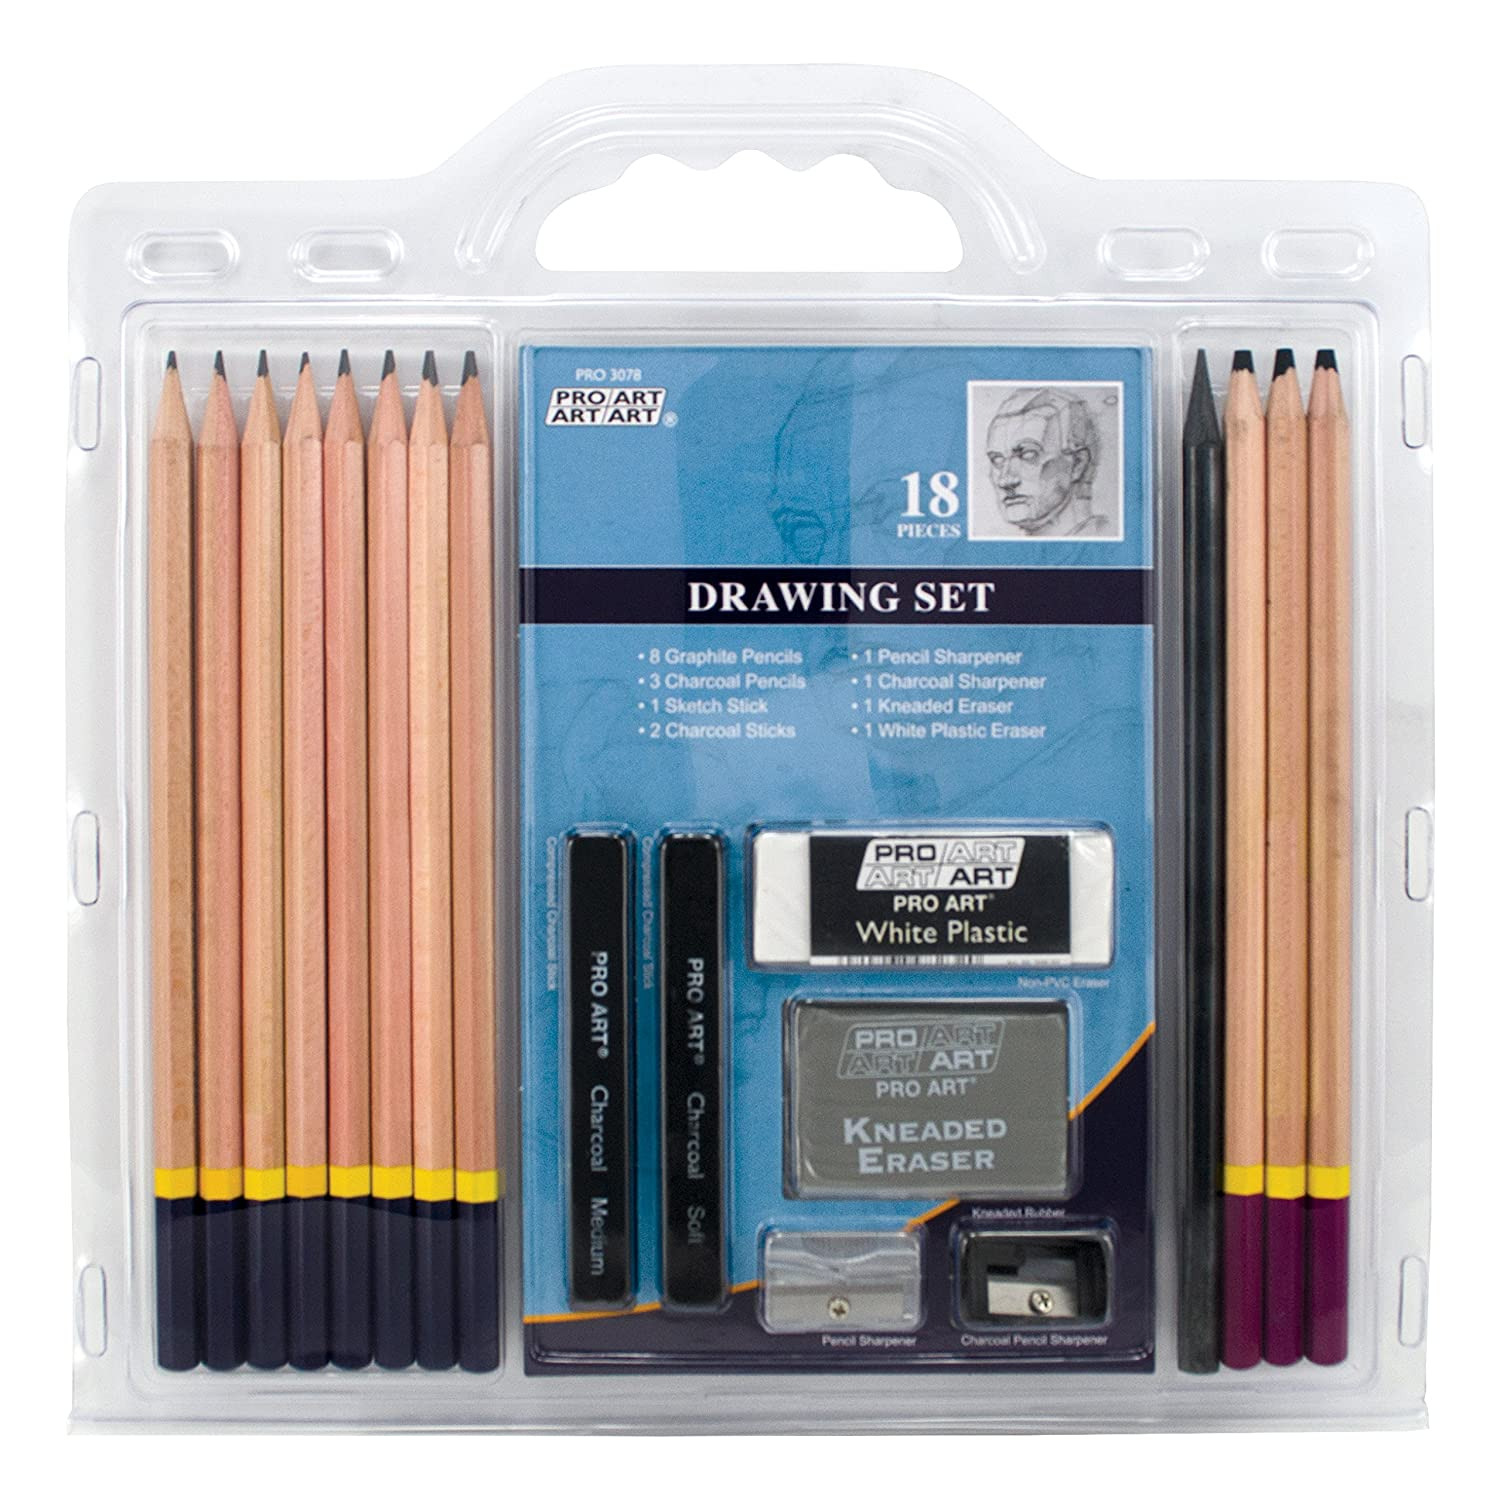 Pro Art lLnIJN 18-Piece Sketch/Draw Pencil Set, 2Pack of Pencil Set 3078